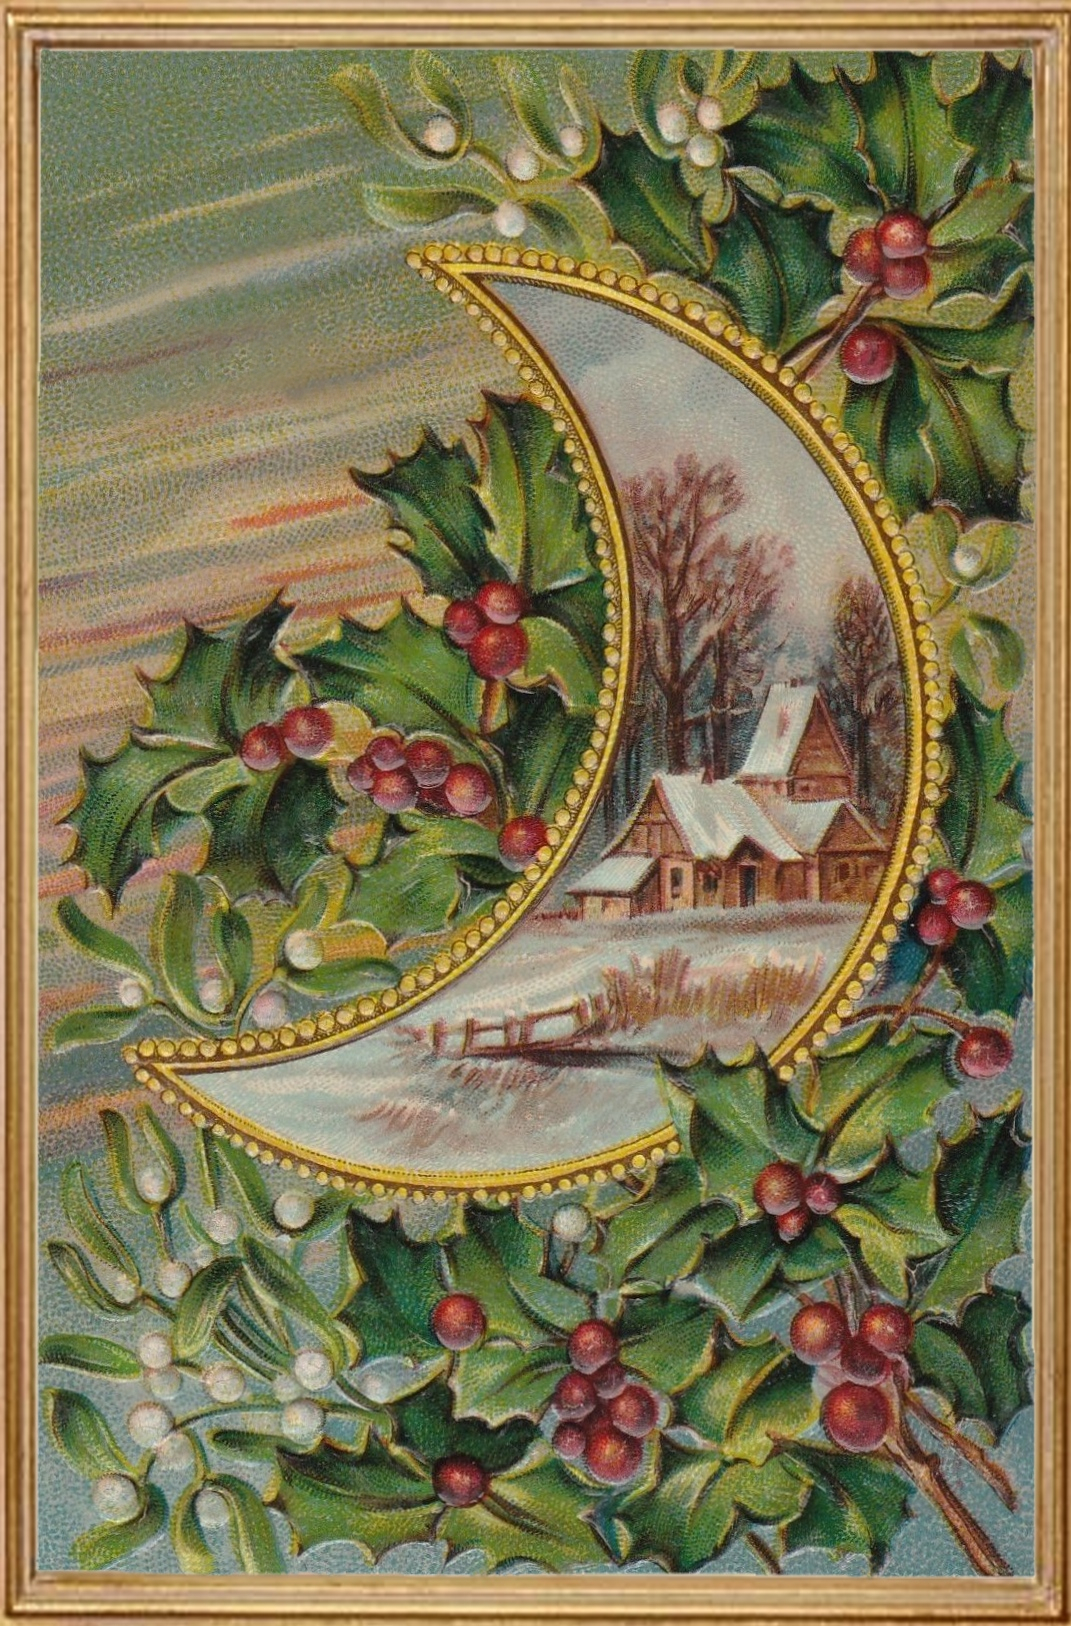 Mistletoe and Holly Christmas Greeting